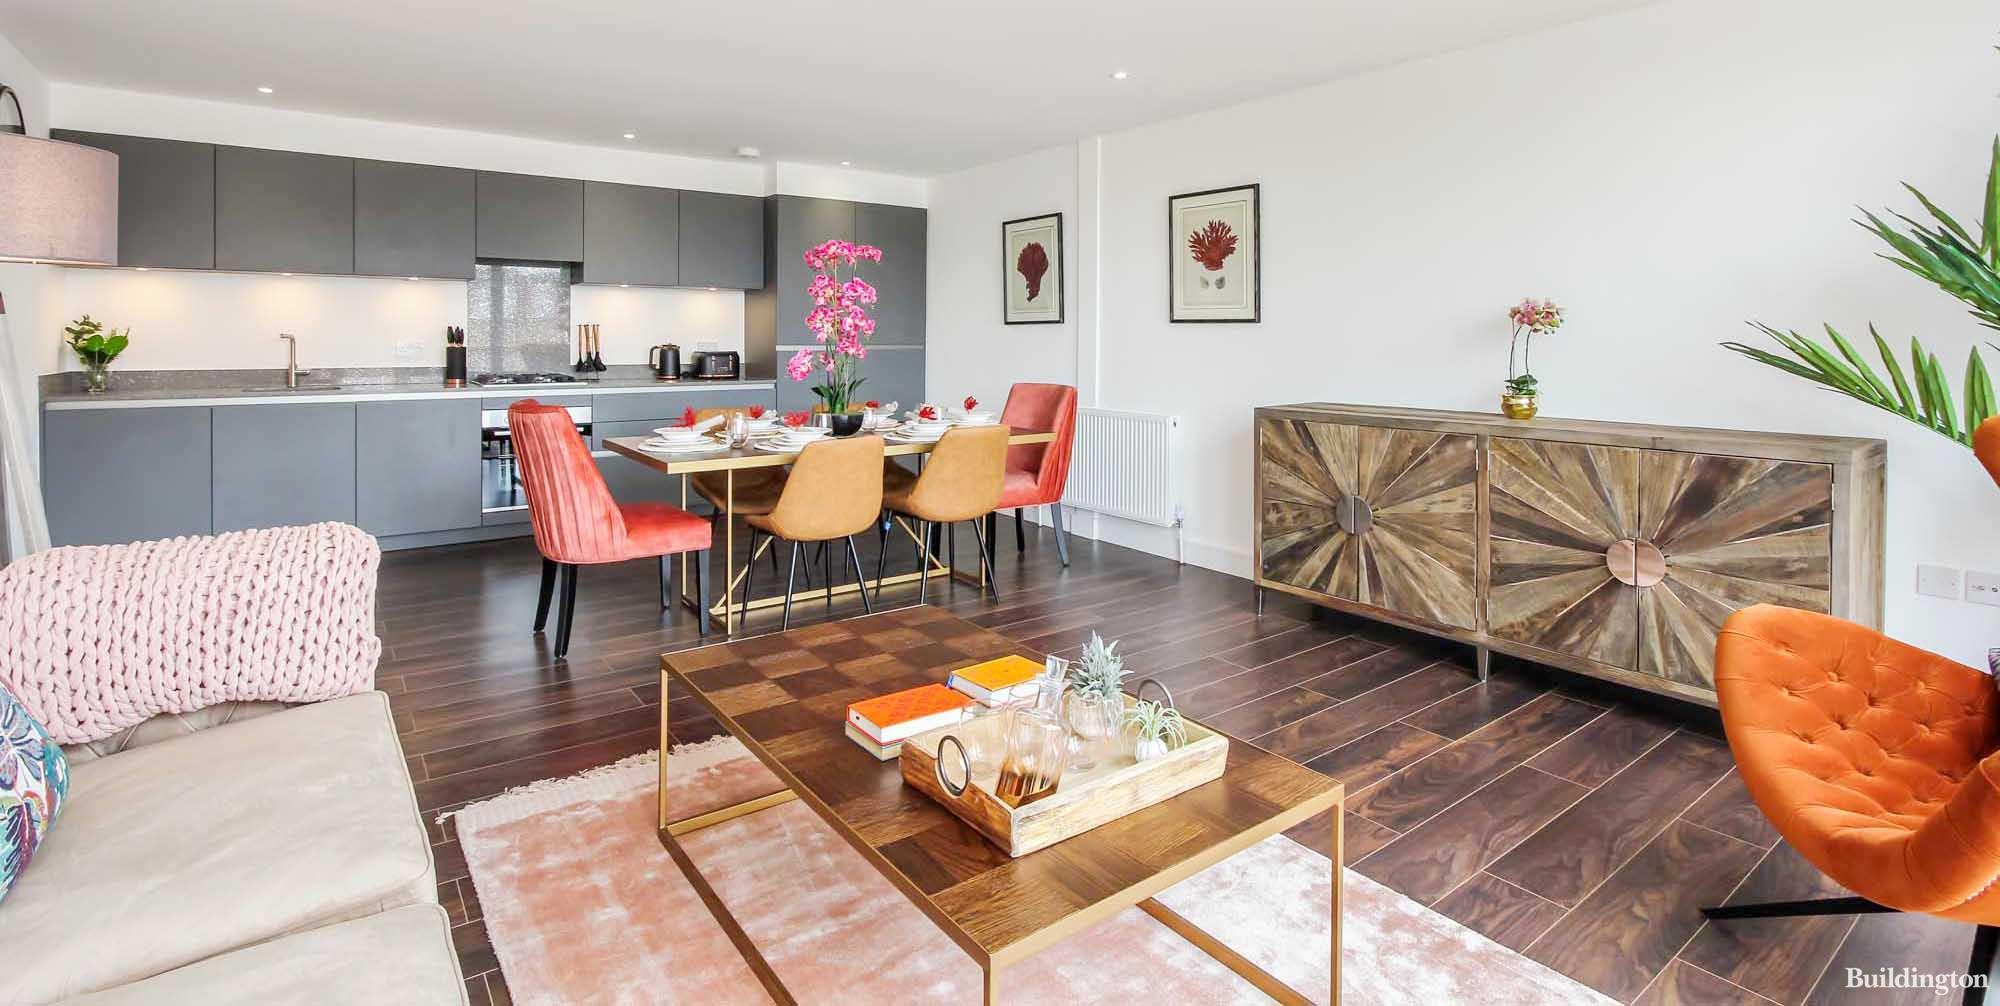 The open plan living and kitchen spaces in each apartment at Milli House are bright and spacious  with the furniture arranged to create the perfect entertaining space while maintaining a cosy feel for quieter nights in